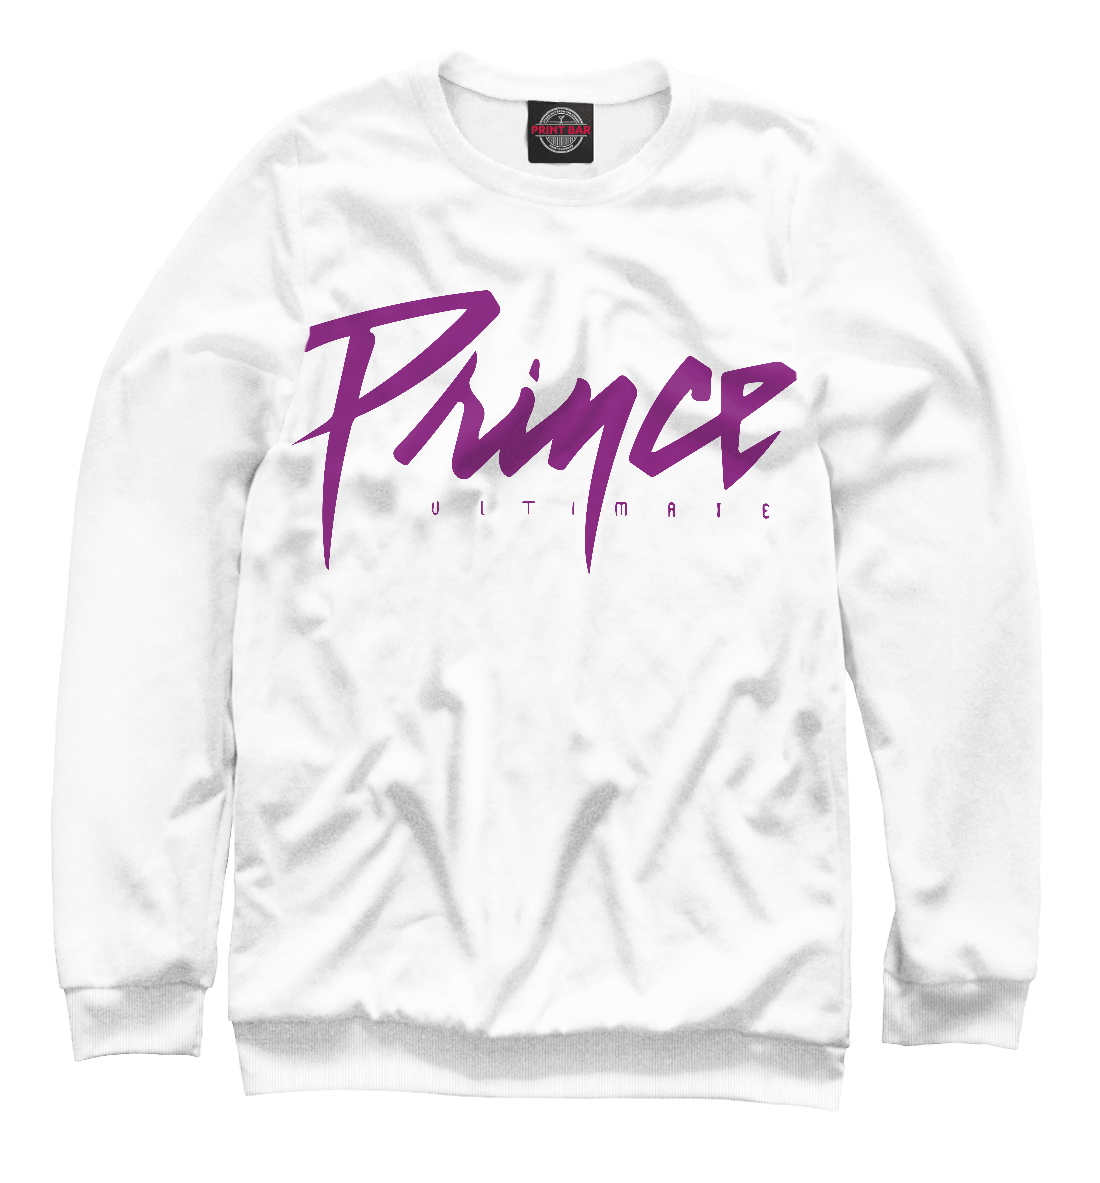 The Legends | Prince